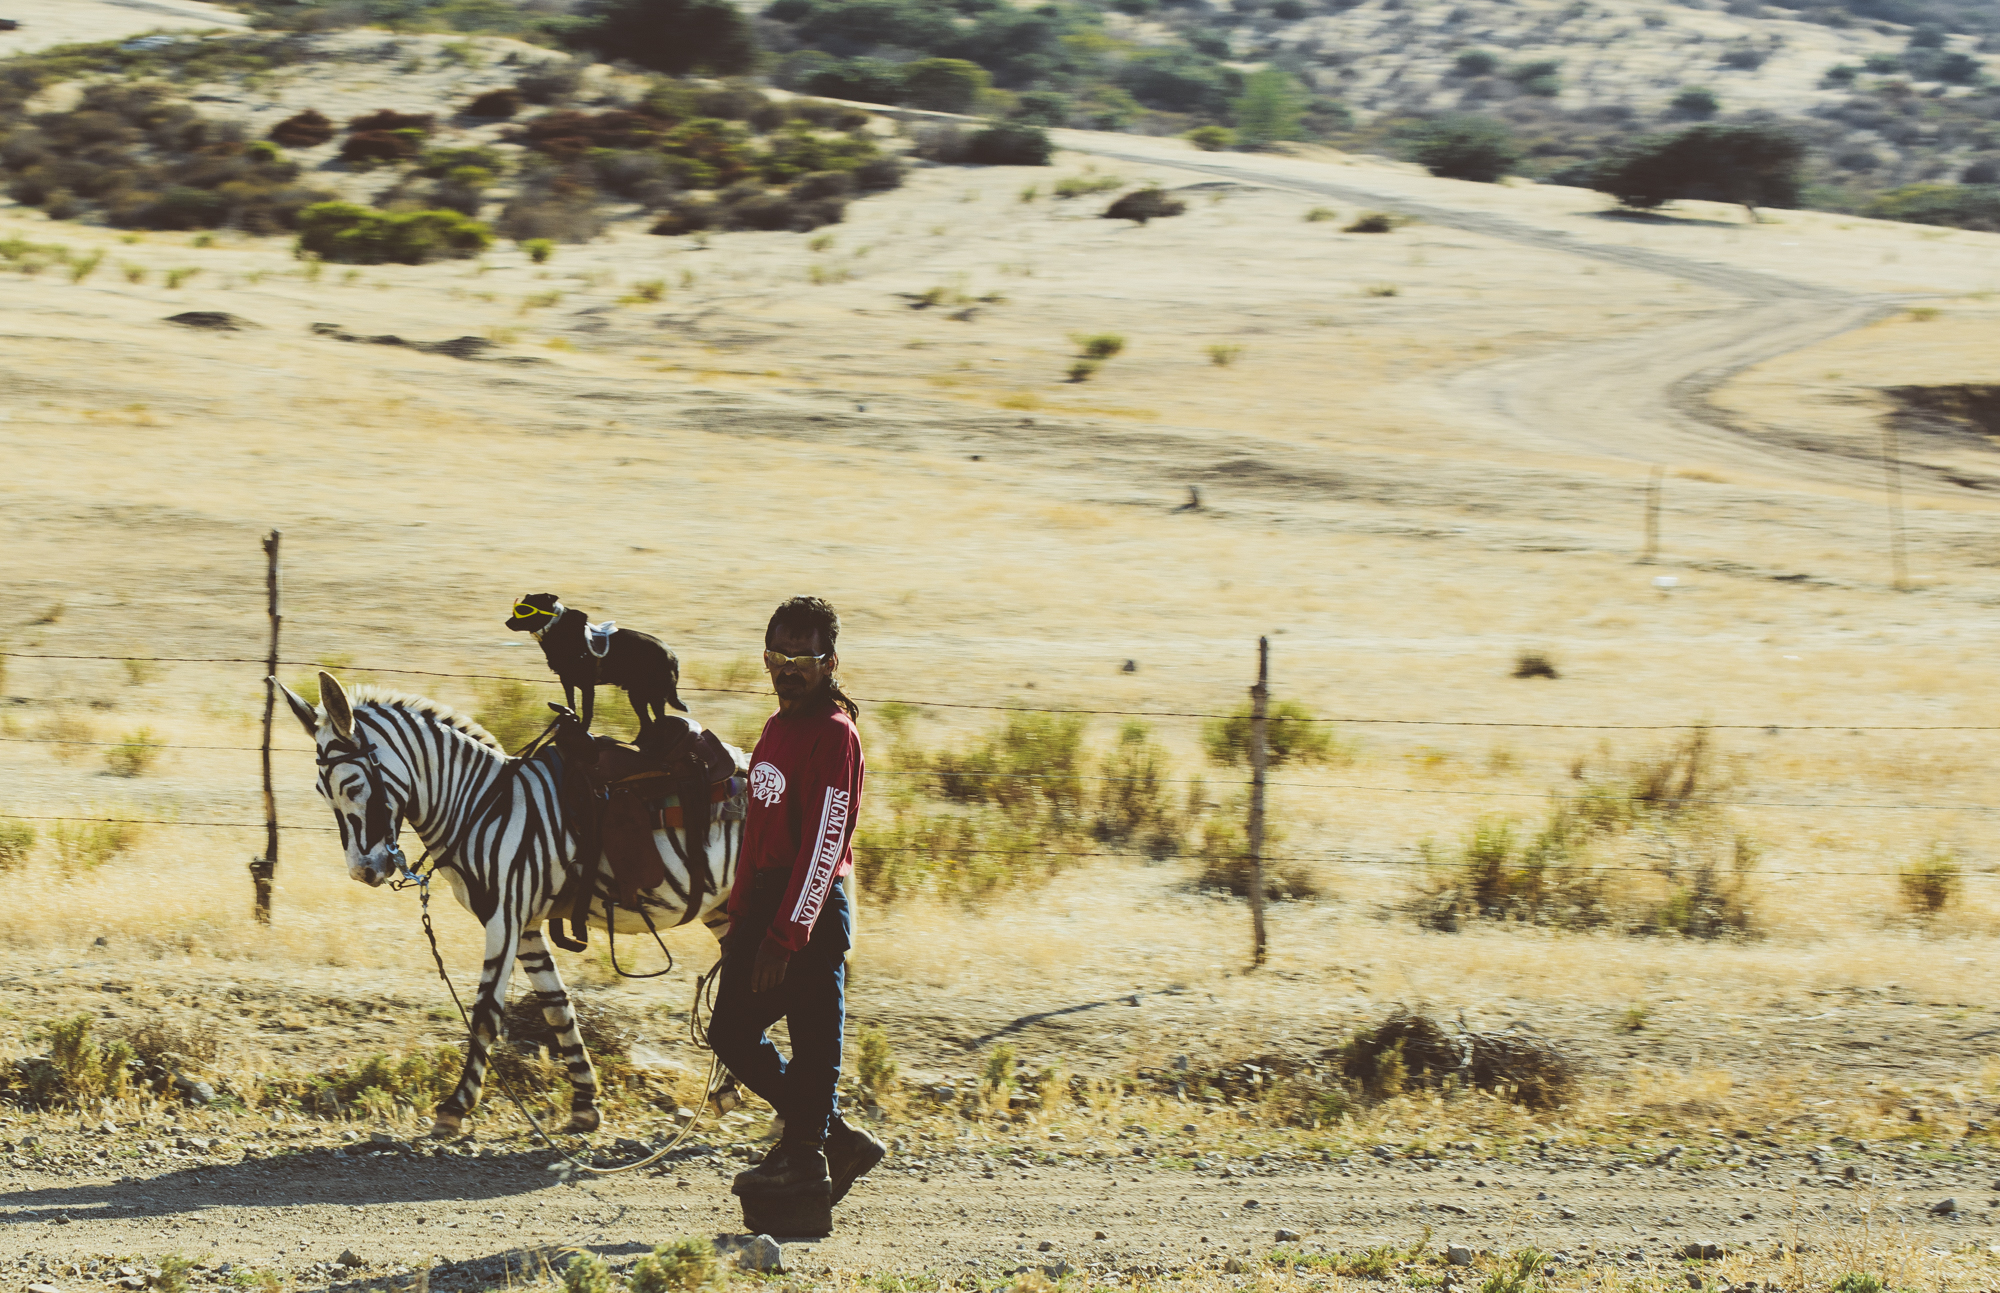 Headed out of Ensenada we caught a rare glimpse of the zonkey ridding, sunglass wearing dog!